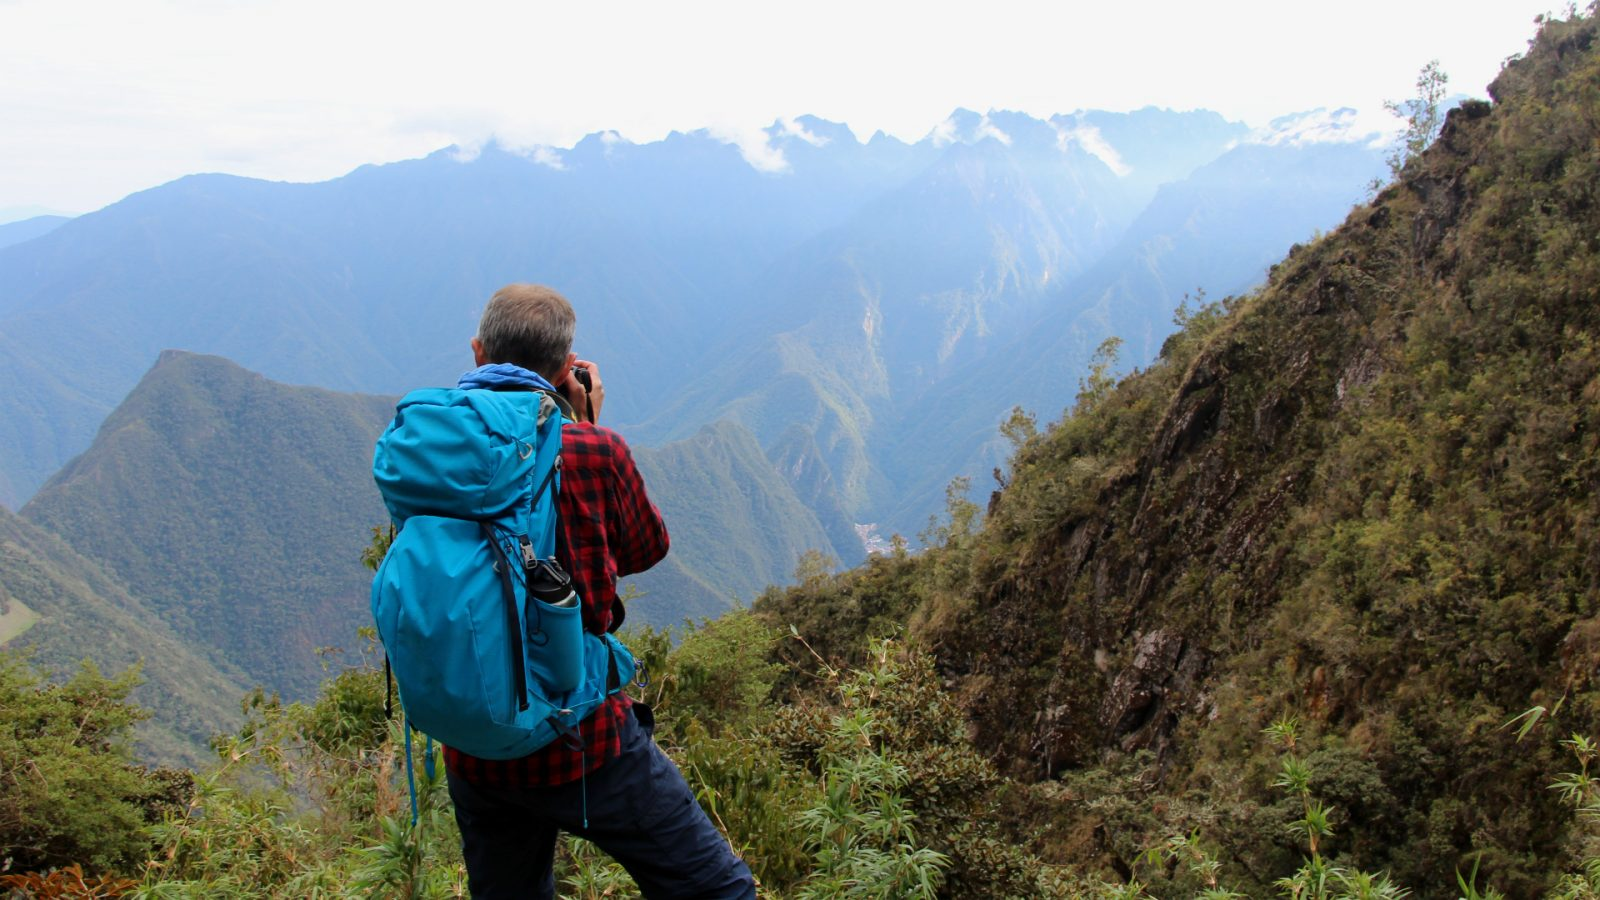 INCA TRAIL 5 DAYS by inka trail trek